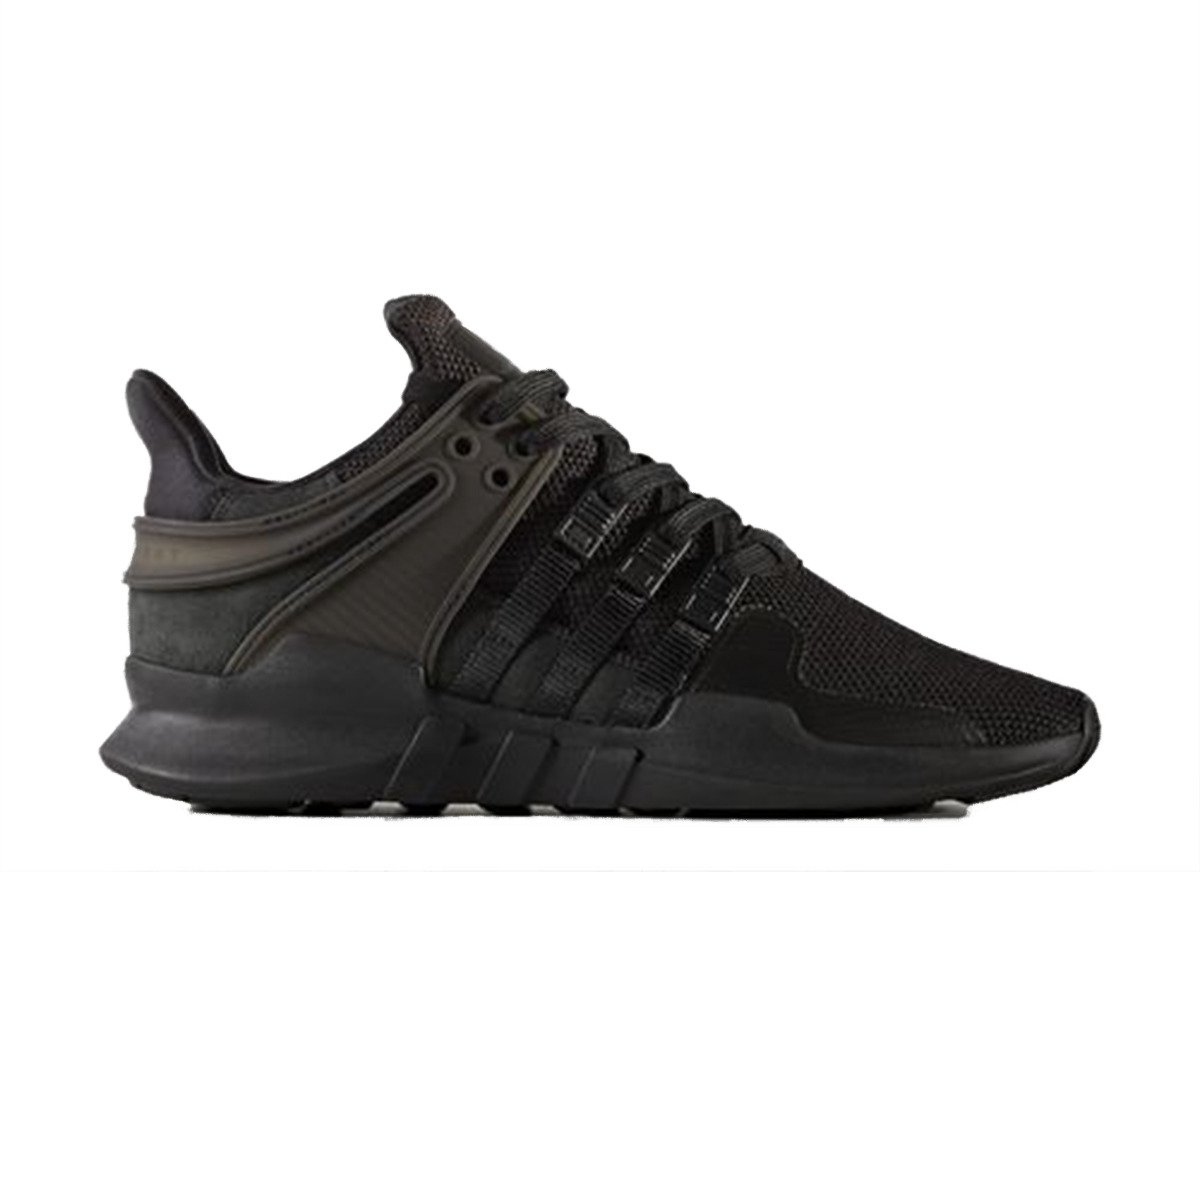 adidas eqt support adv schuhe by9110 basketballschuhe. Black Bedroom Furniture Sets. Home Design Ideas